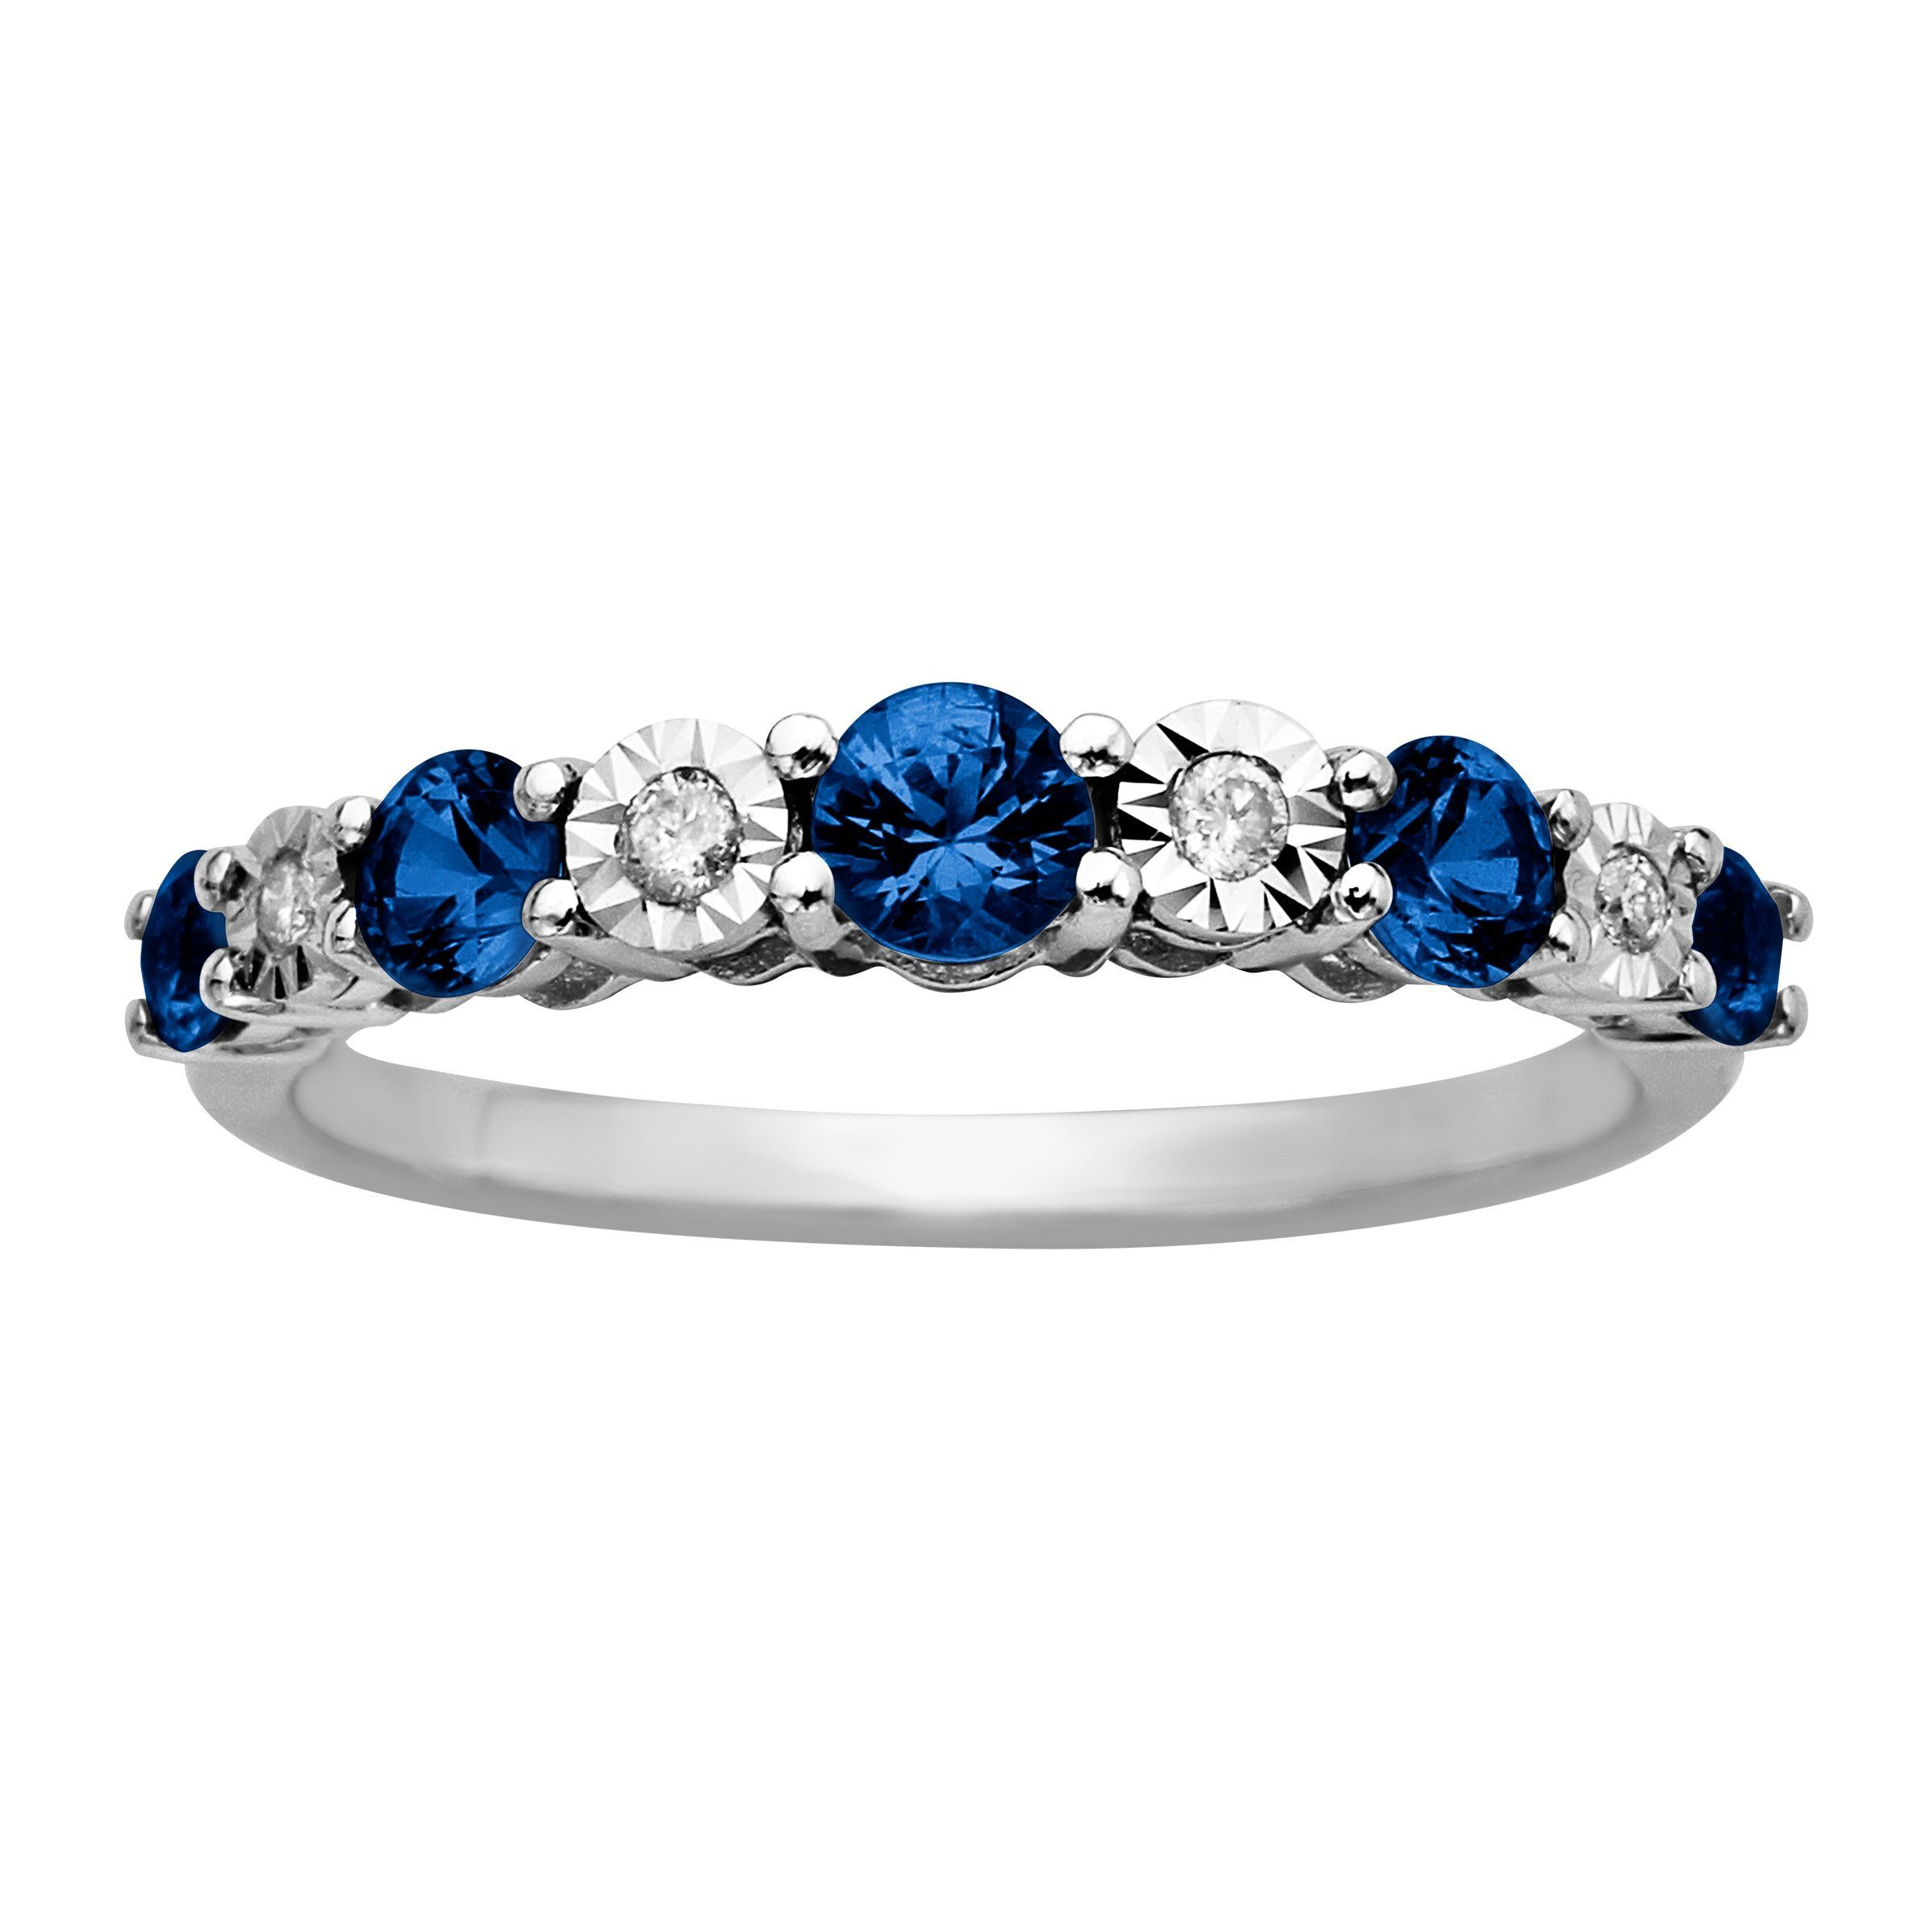 3/4 ct Created Sapphire Ring with Diamonds in 10K White